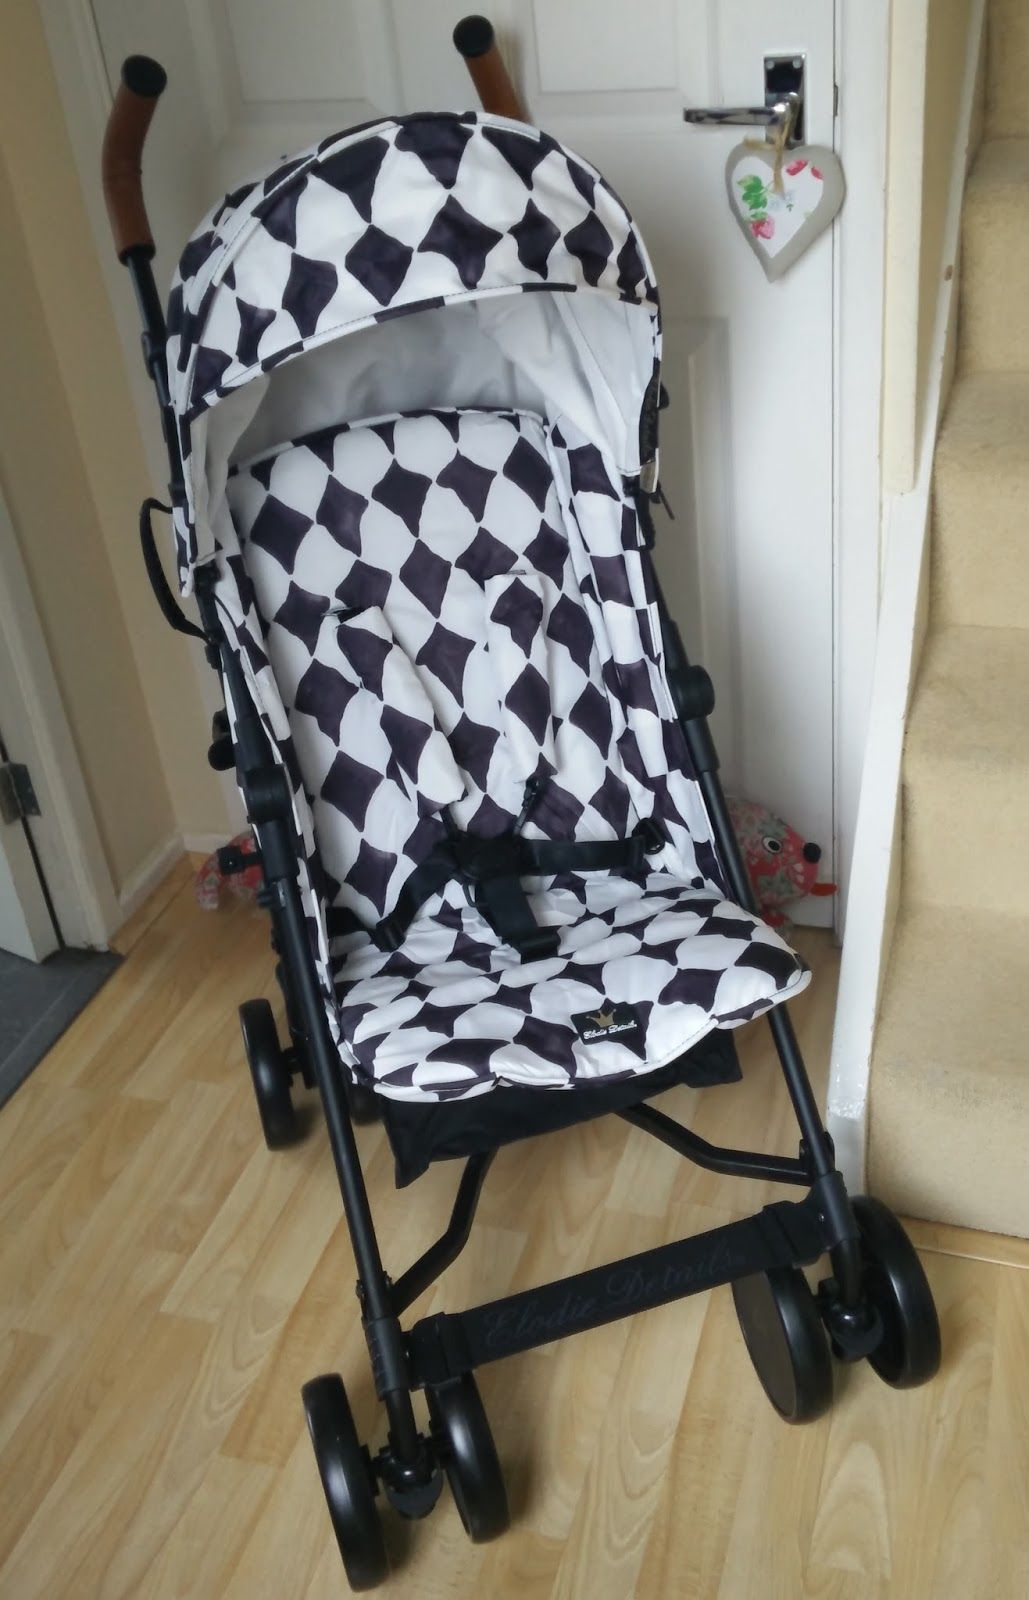 90b7780bac56 Elodie Details Stockholm Stroller Graphic Grace | BABY BOY | Baby ...